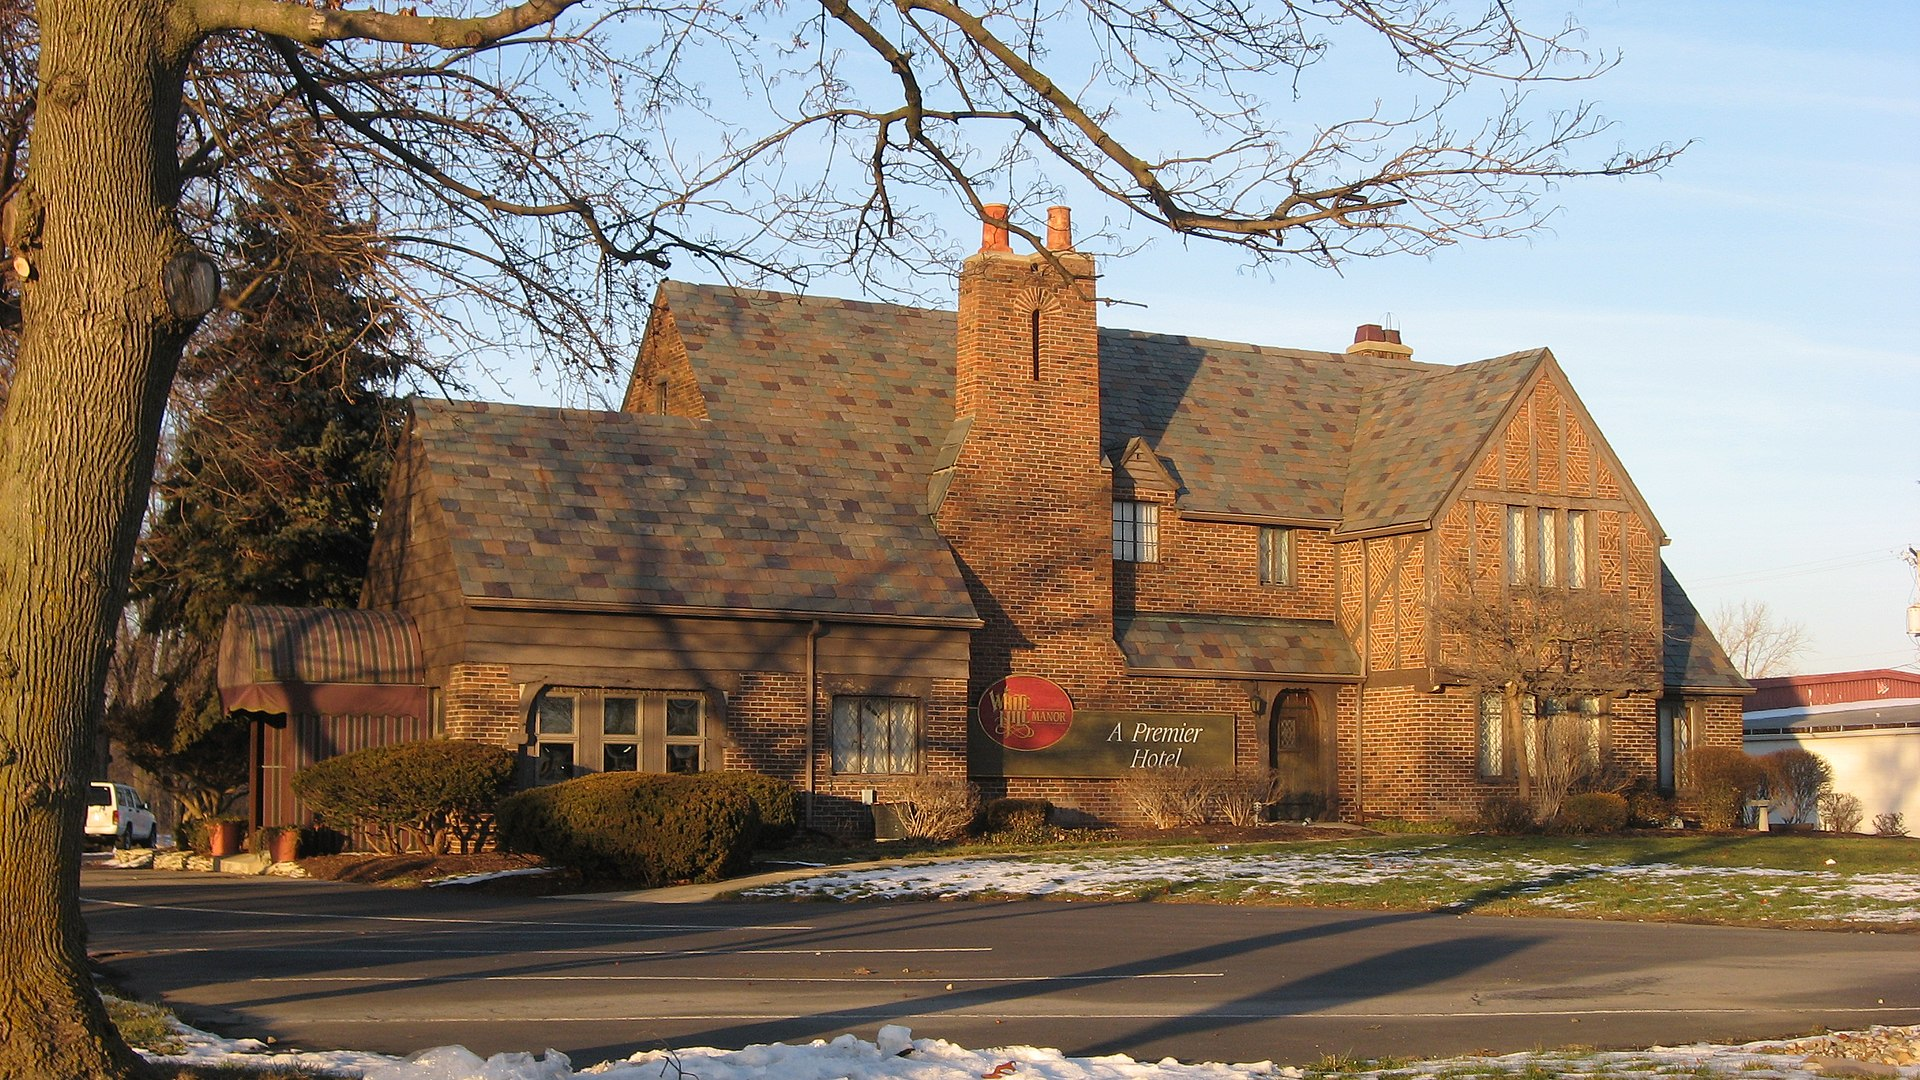 Justin zimmer house wikipedia for Zimmer holdings